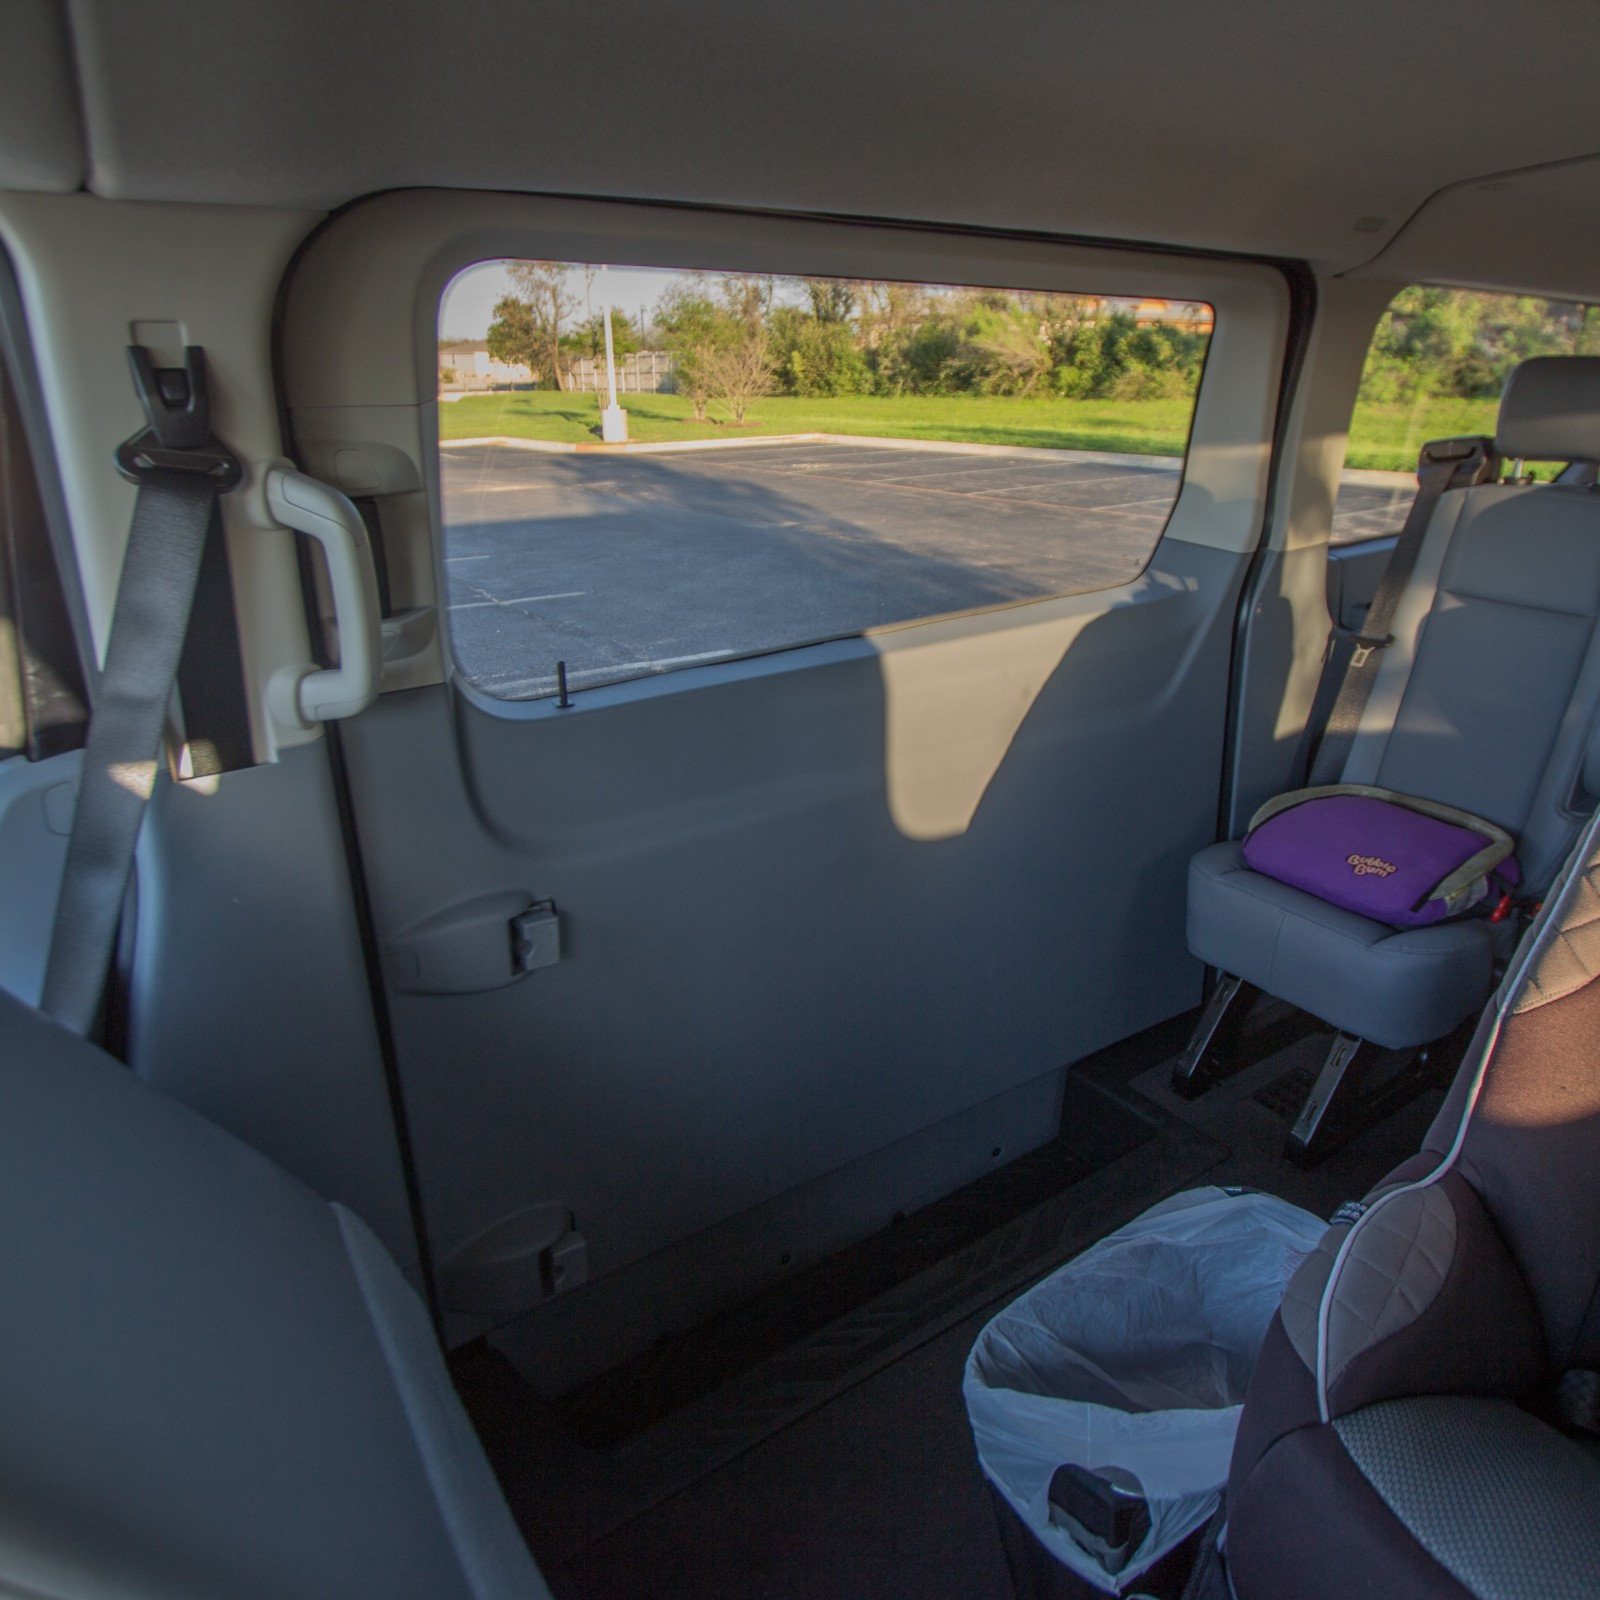 2017 Ford Transit Review Family Edition – Marshall Hines – Medium